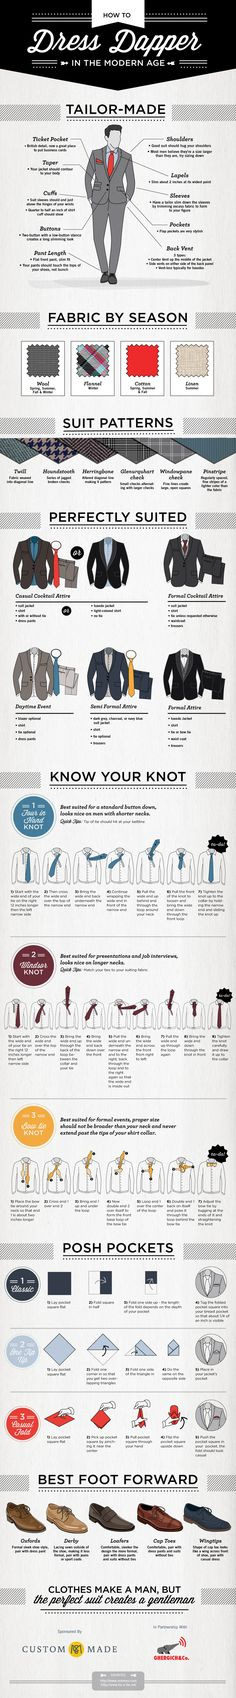 How To Dress Dapper In The Modern Age - Infographic #infographic #menstyle #RMRS